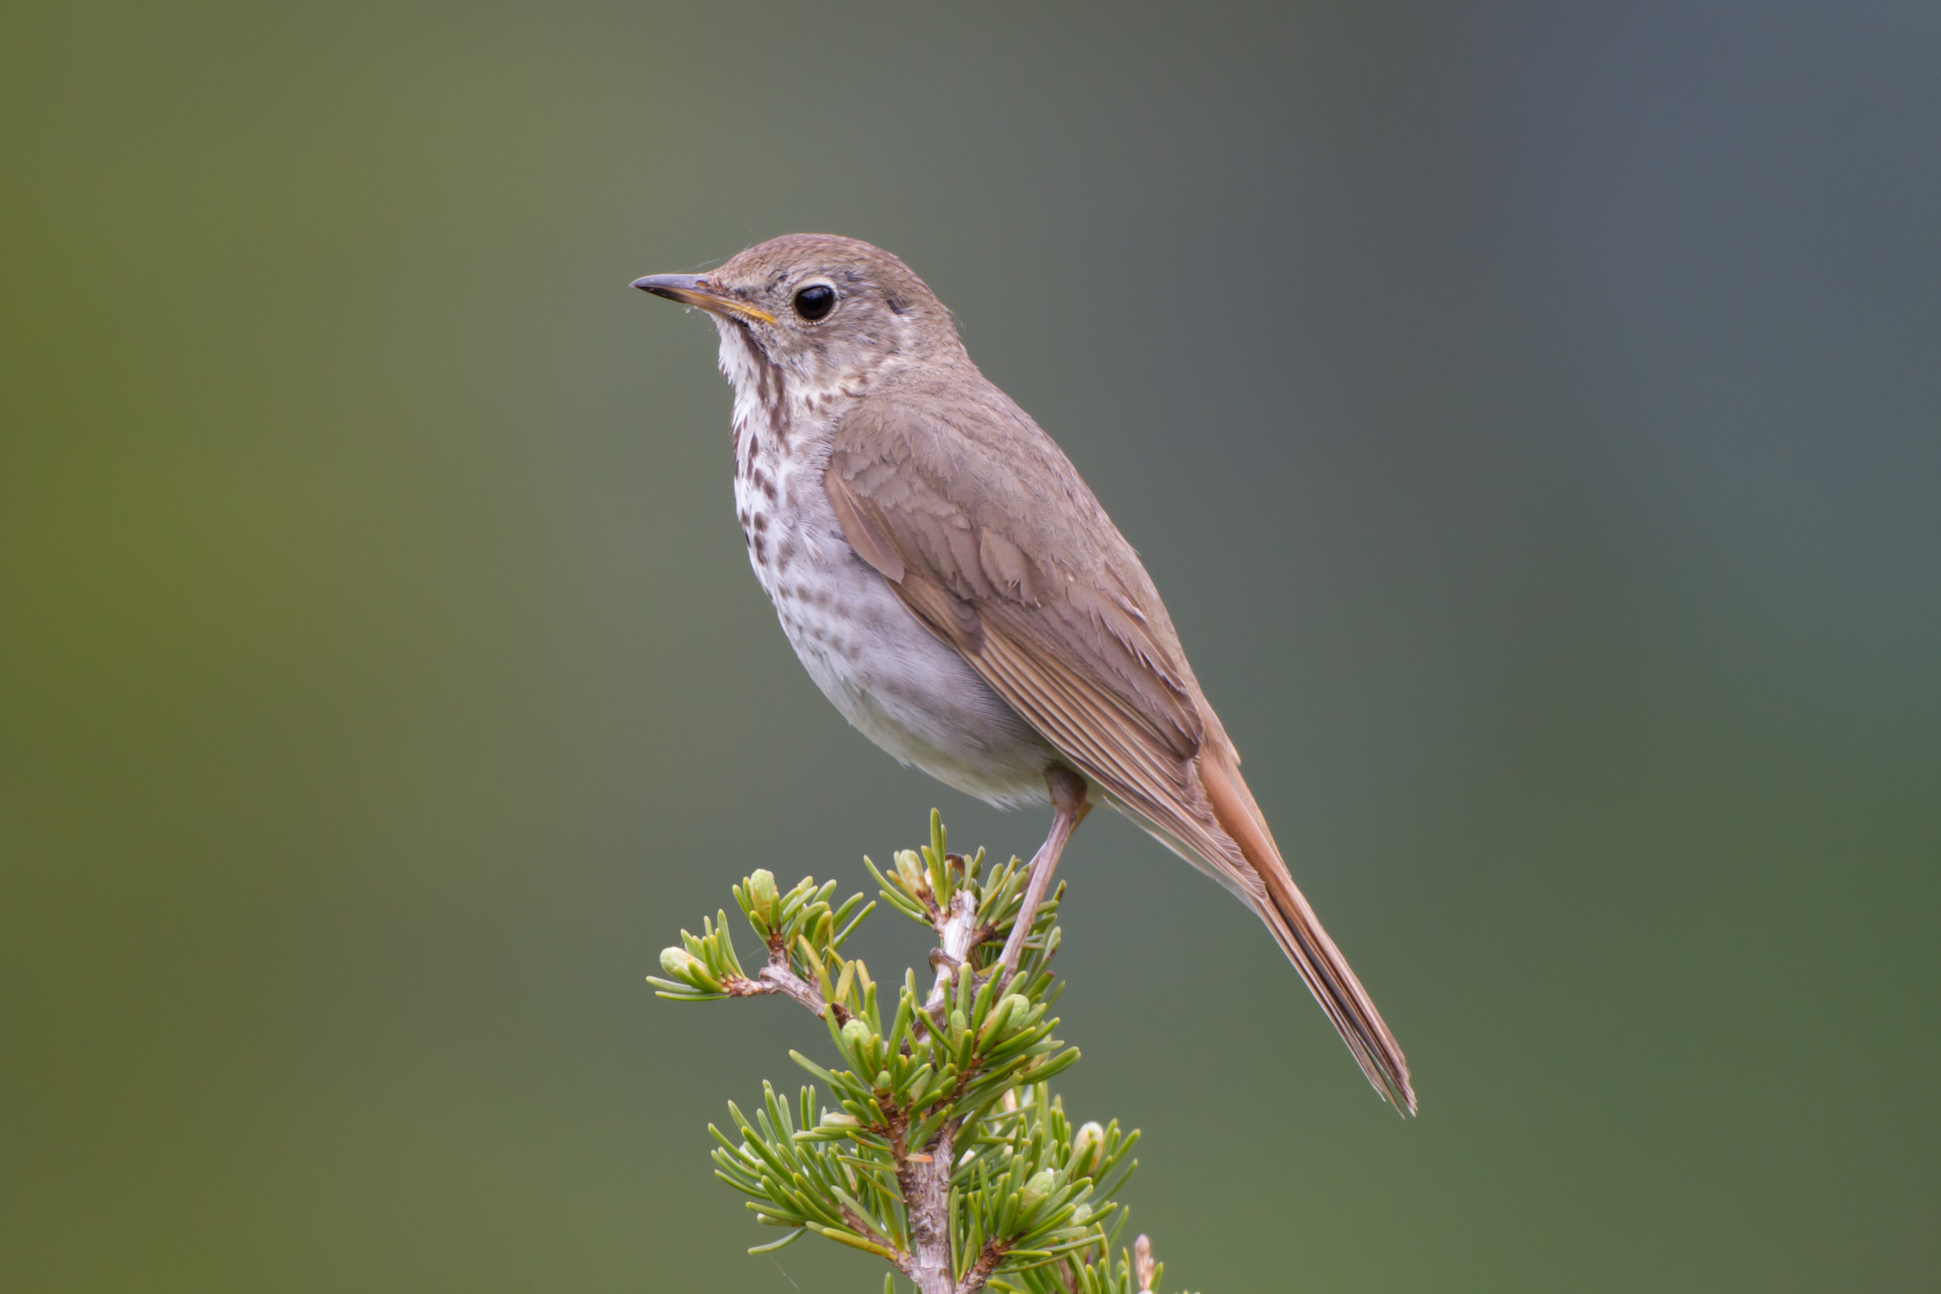 The Hermit Thrush songbird produces different sounds based on geography, with differences that can be traced back to its evolutionary past.